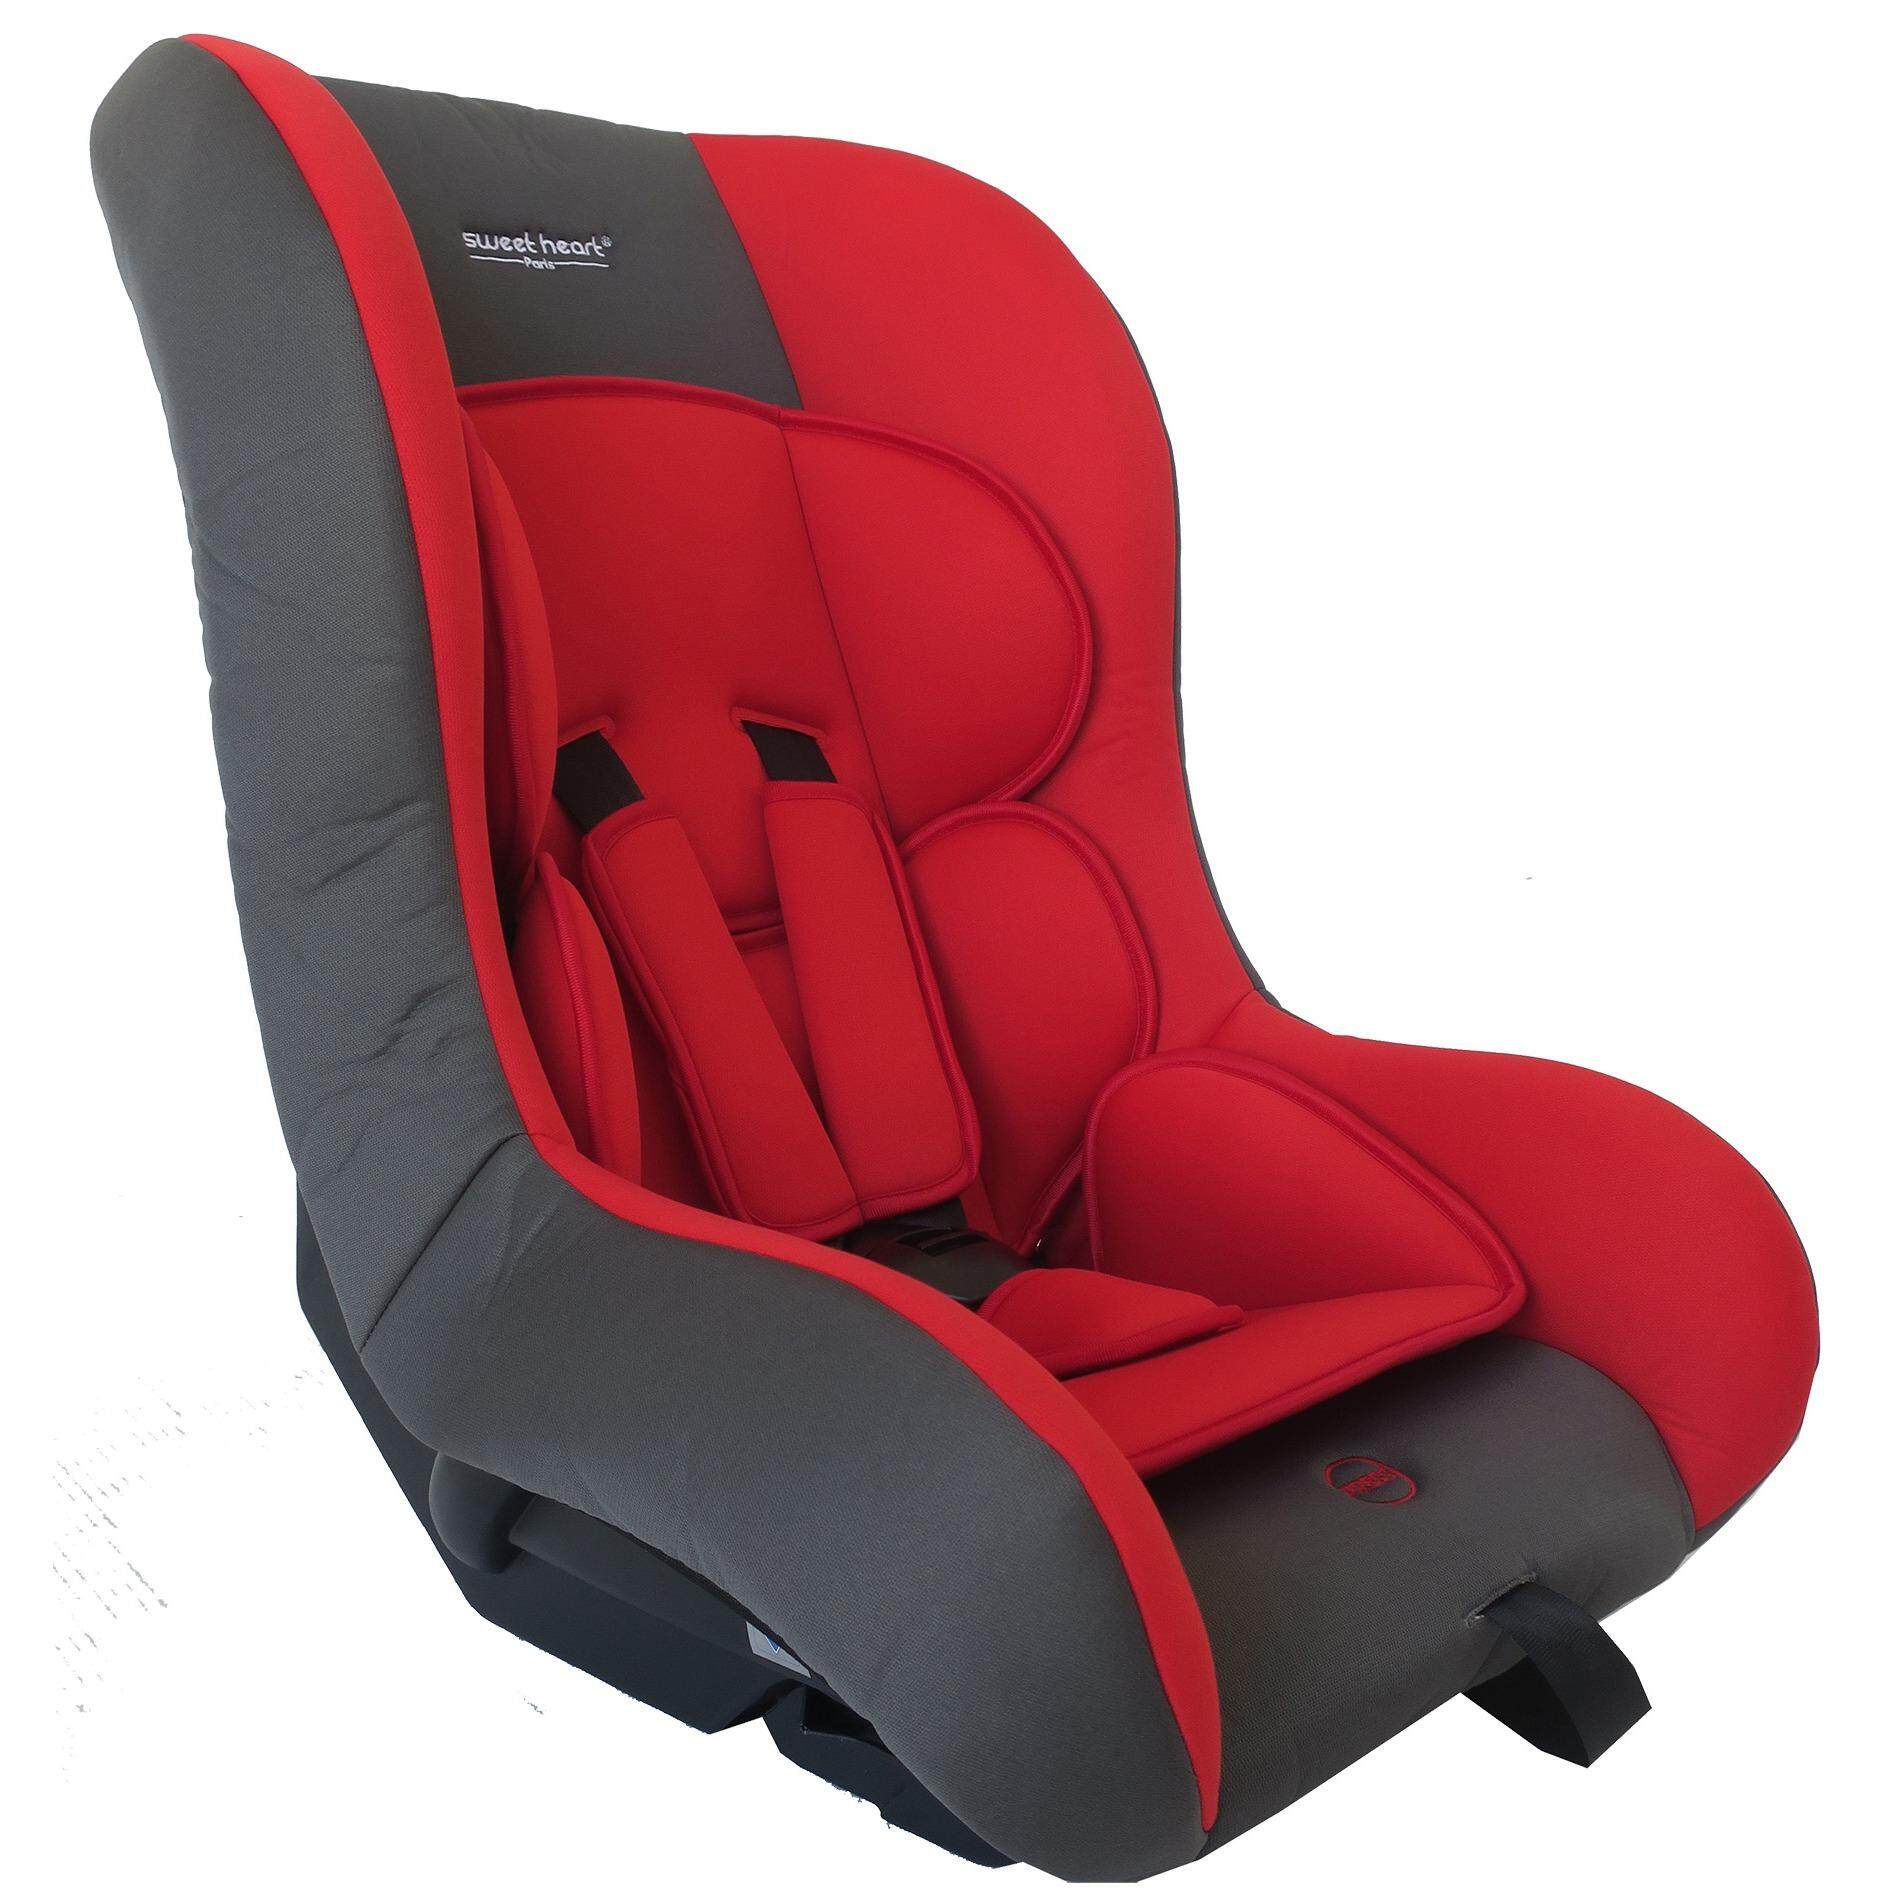 sweet heart paris cs256 safety car seat new red with washable covers lazada. Black Bedroom Furniture Sets. Home Design Ideas